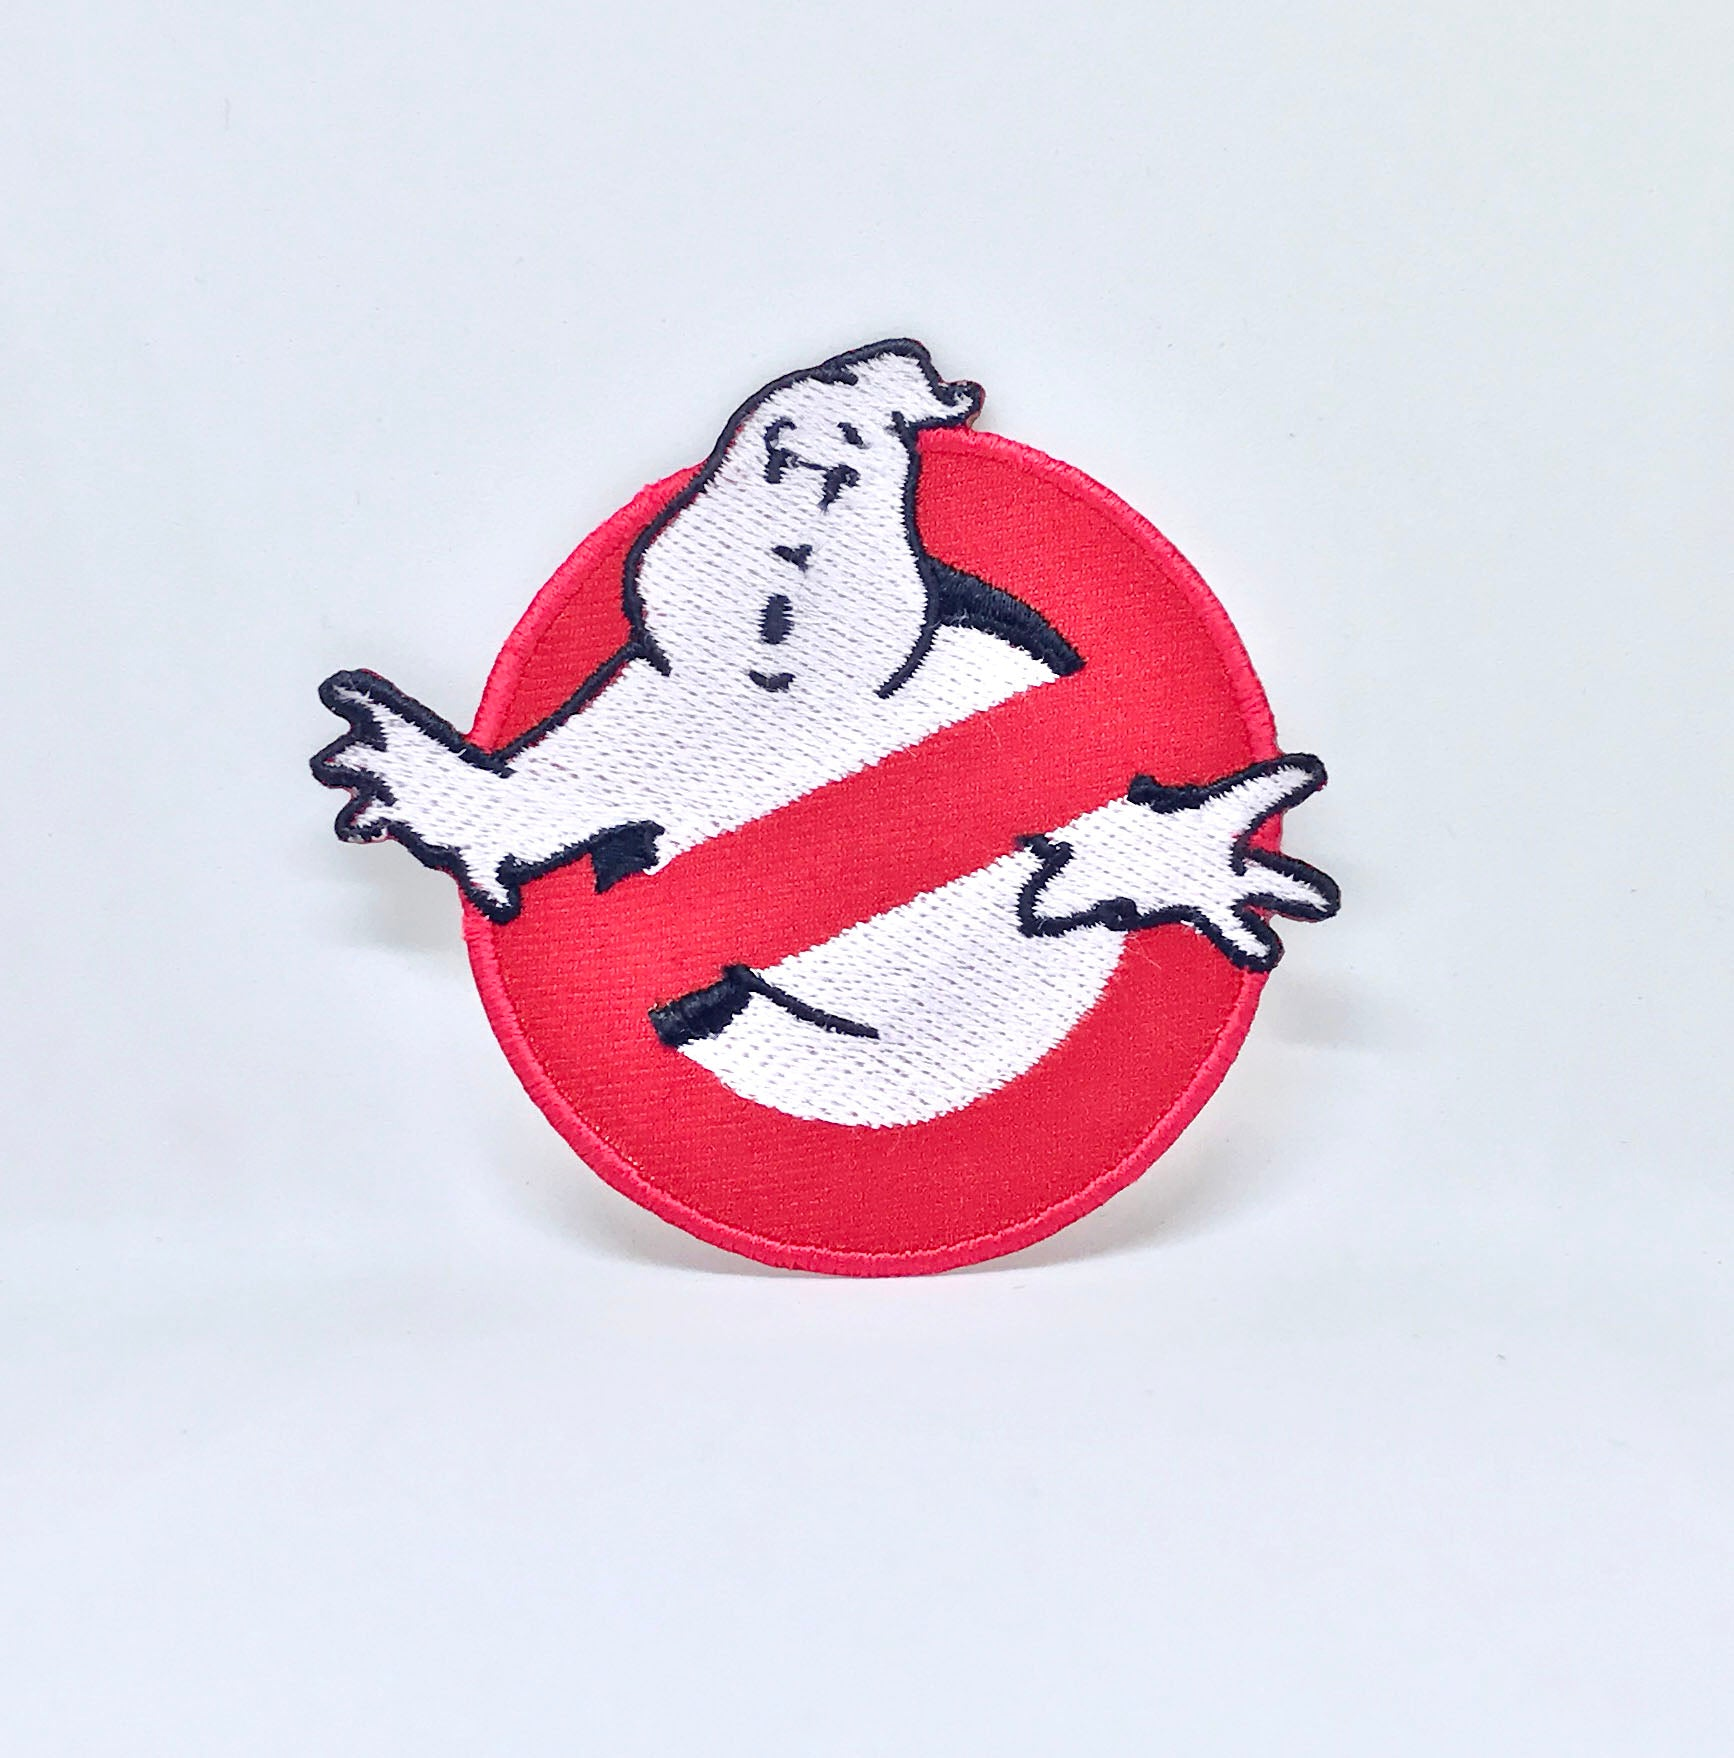 GHOSTBUSTERS Movie Fancy Dress logo Iron Sew On Embroidered Patch - Patches-Badges